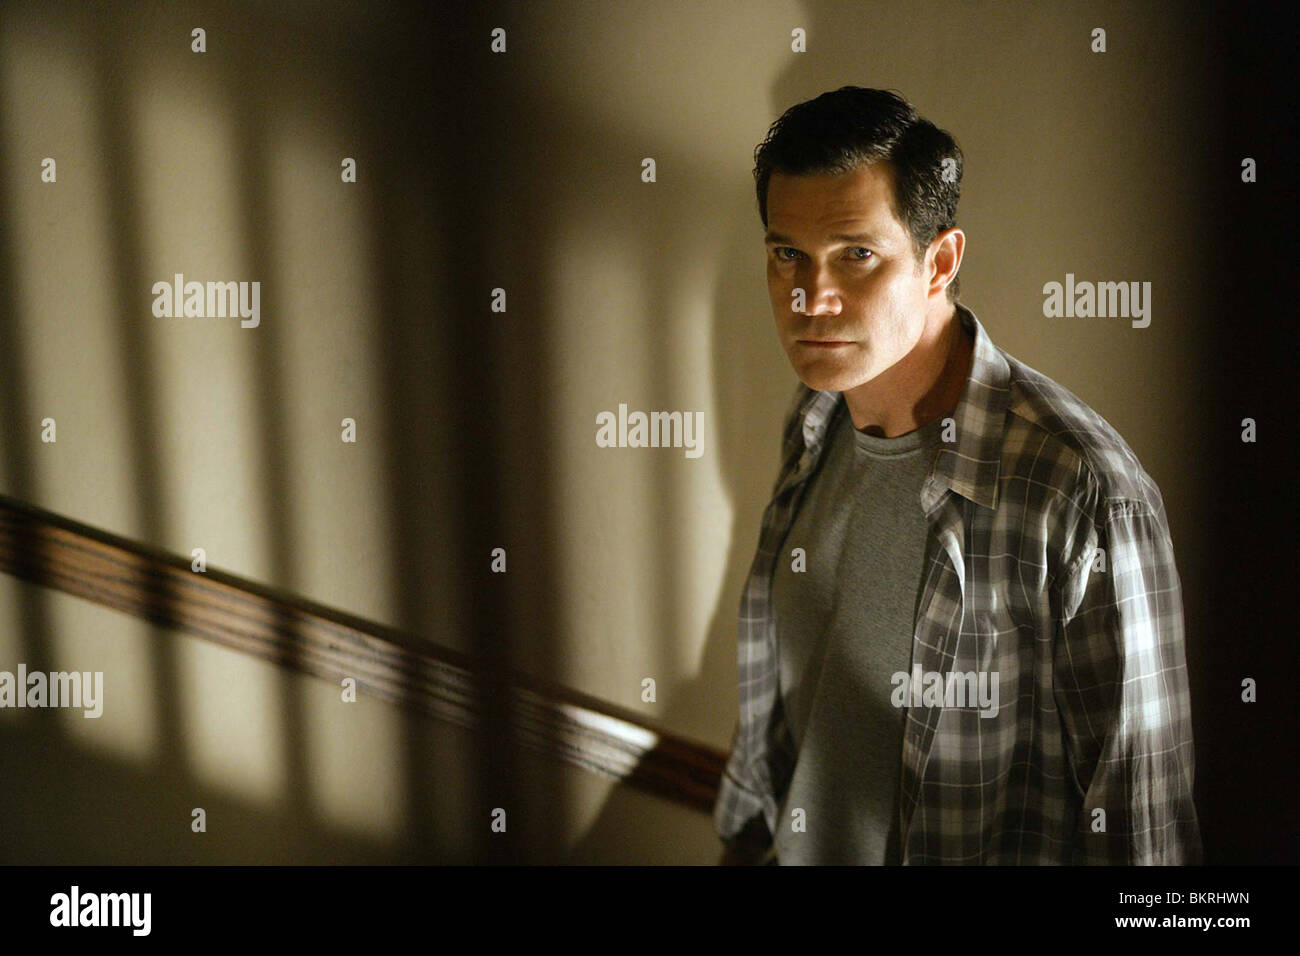 THE STEPFATHER (2009) DYLAN WALSH NELSON MCCORMICK (DIR) 005 - Stock Image